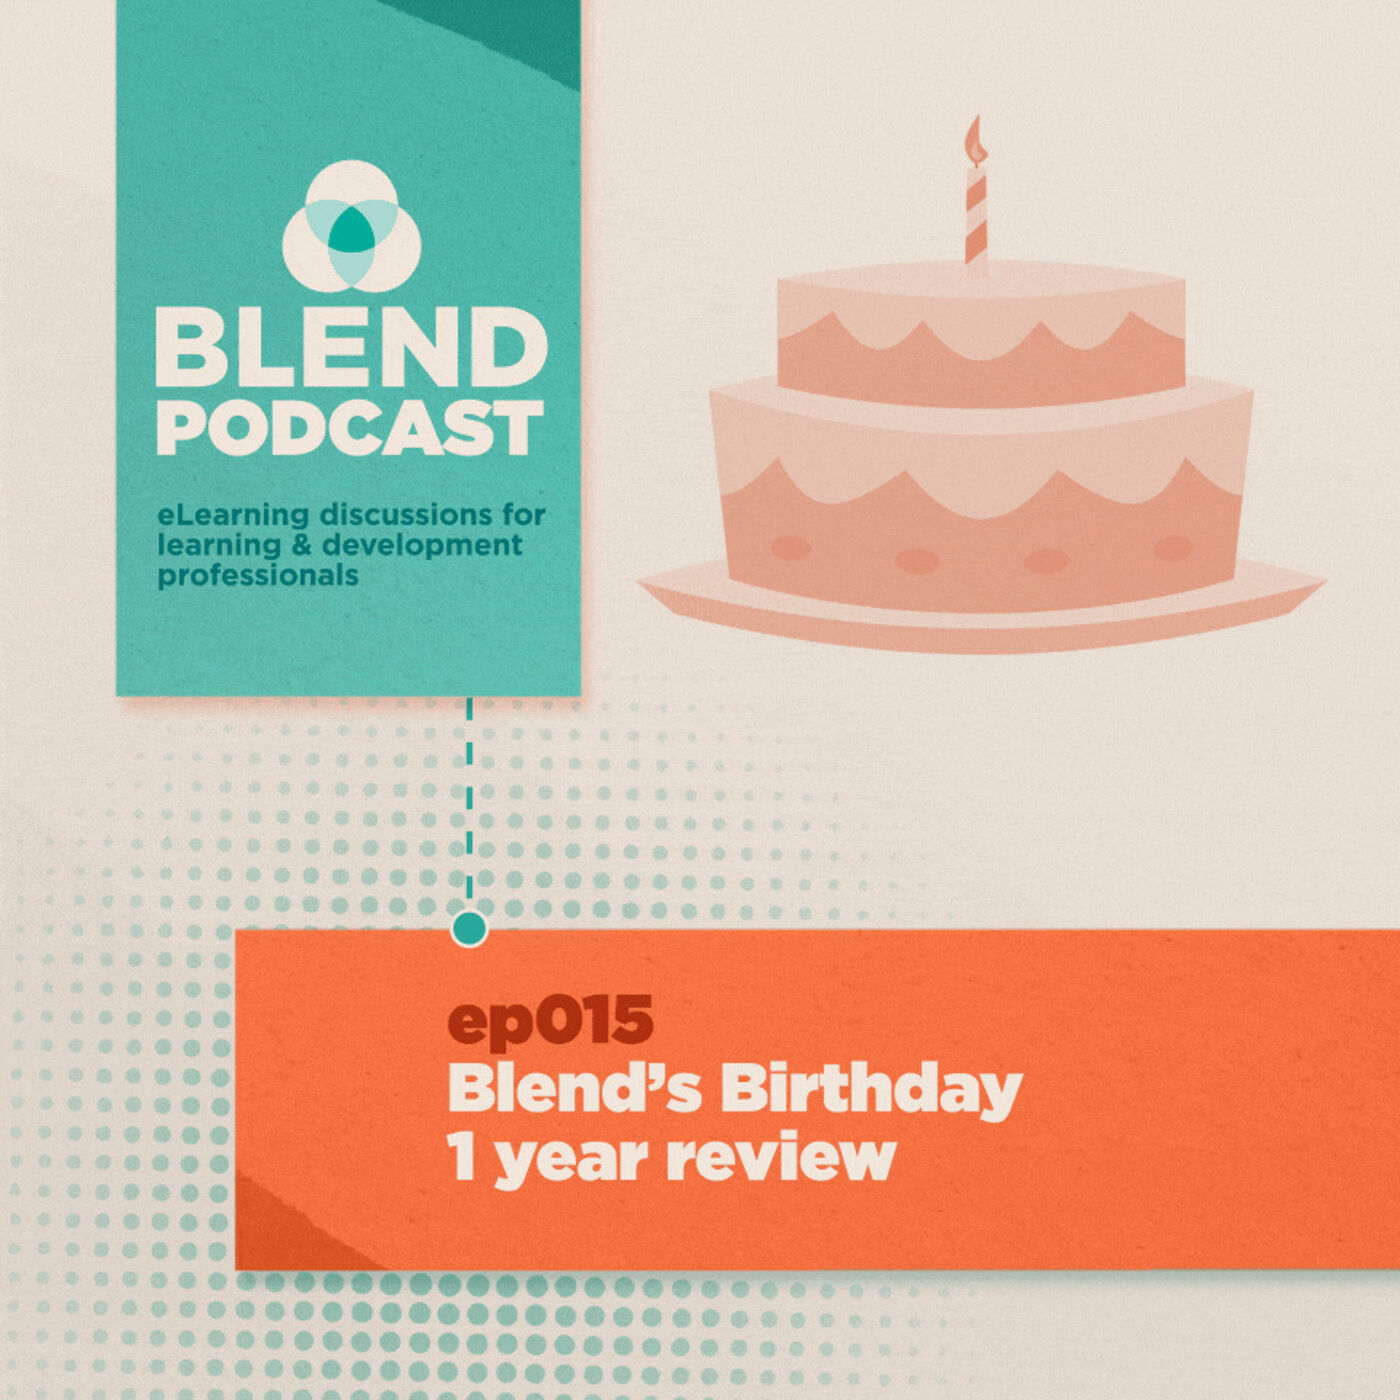 #15 Blend's Birthday - 1 Year Review